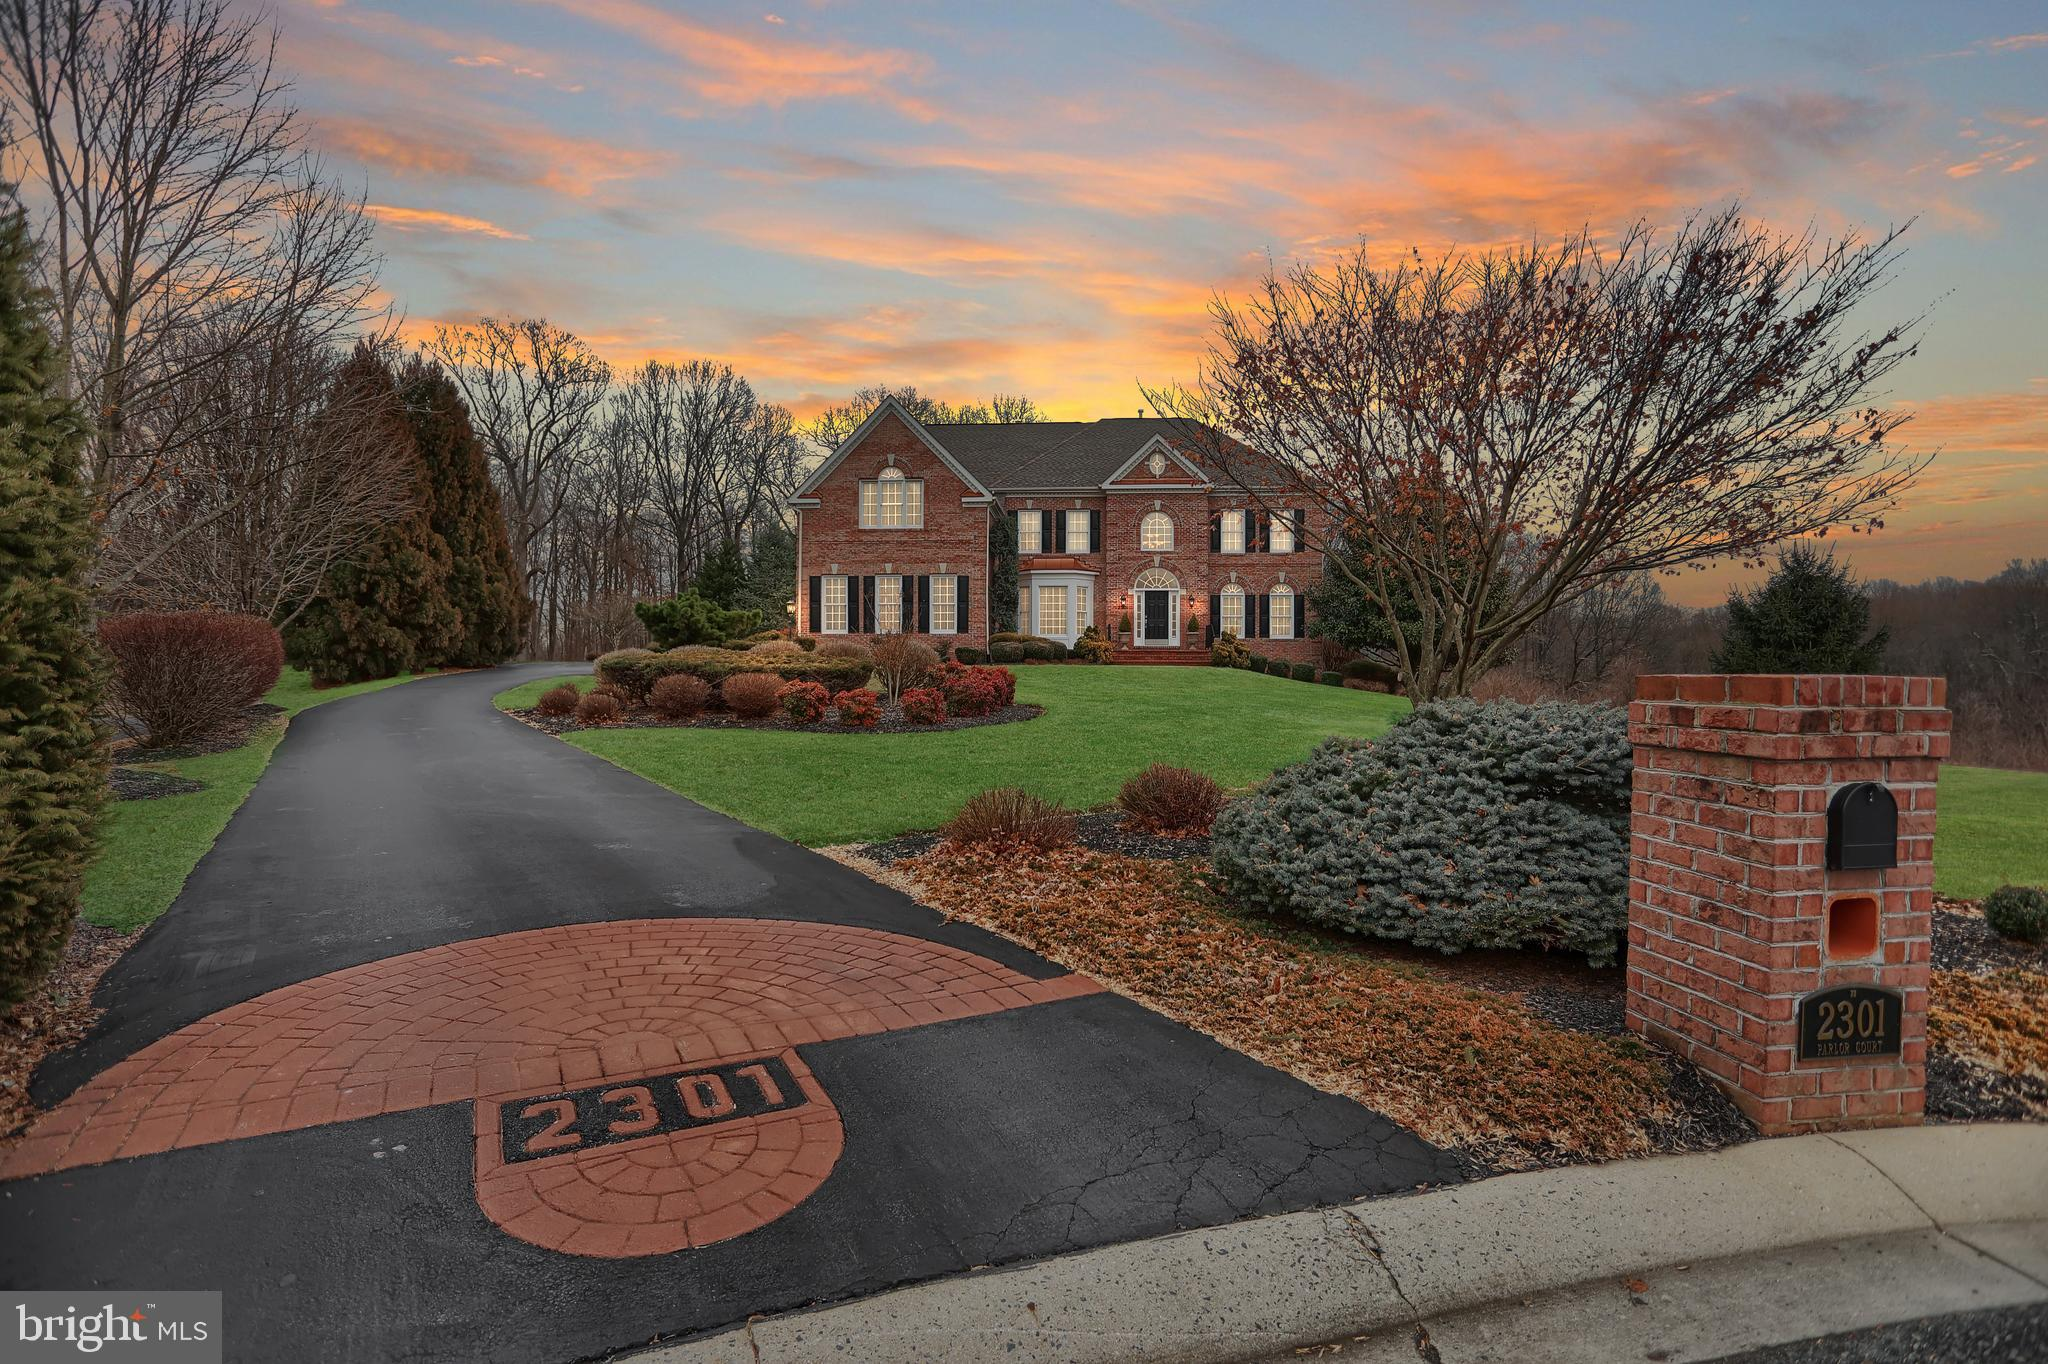 2301 PARLOR COURT, FALLSTON, MD 21047